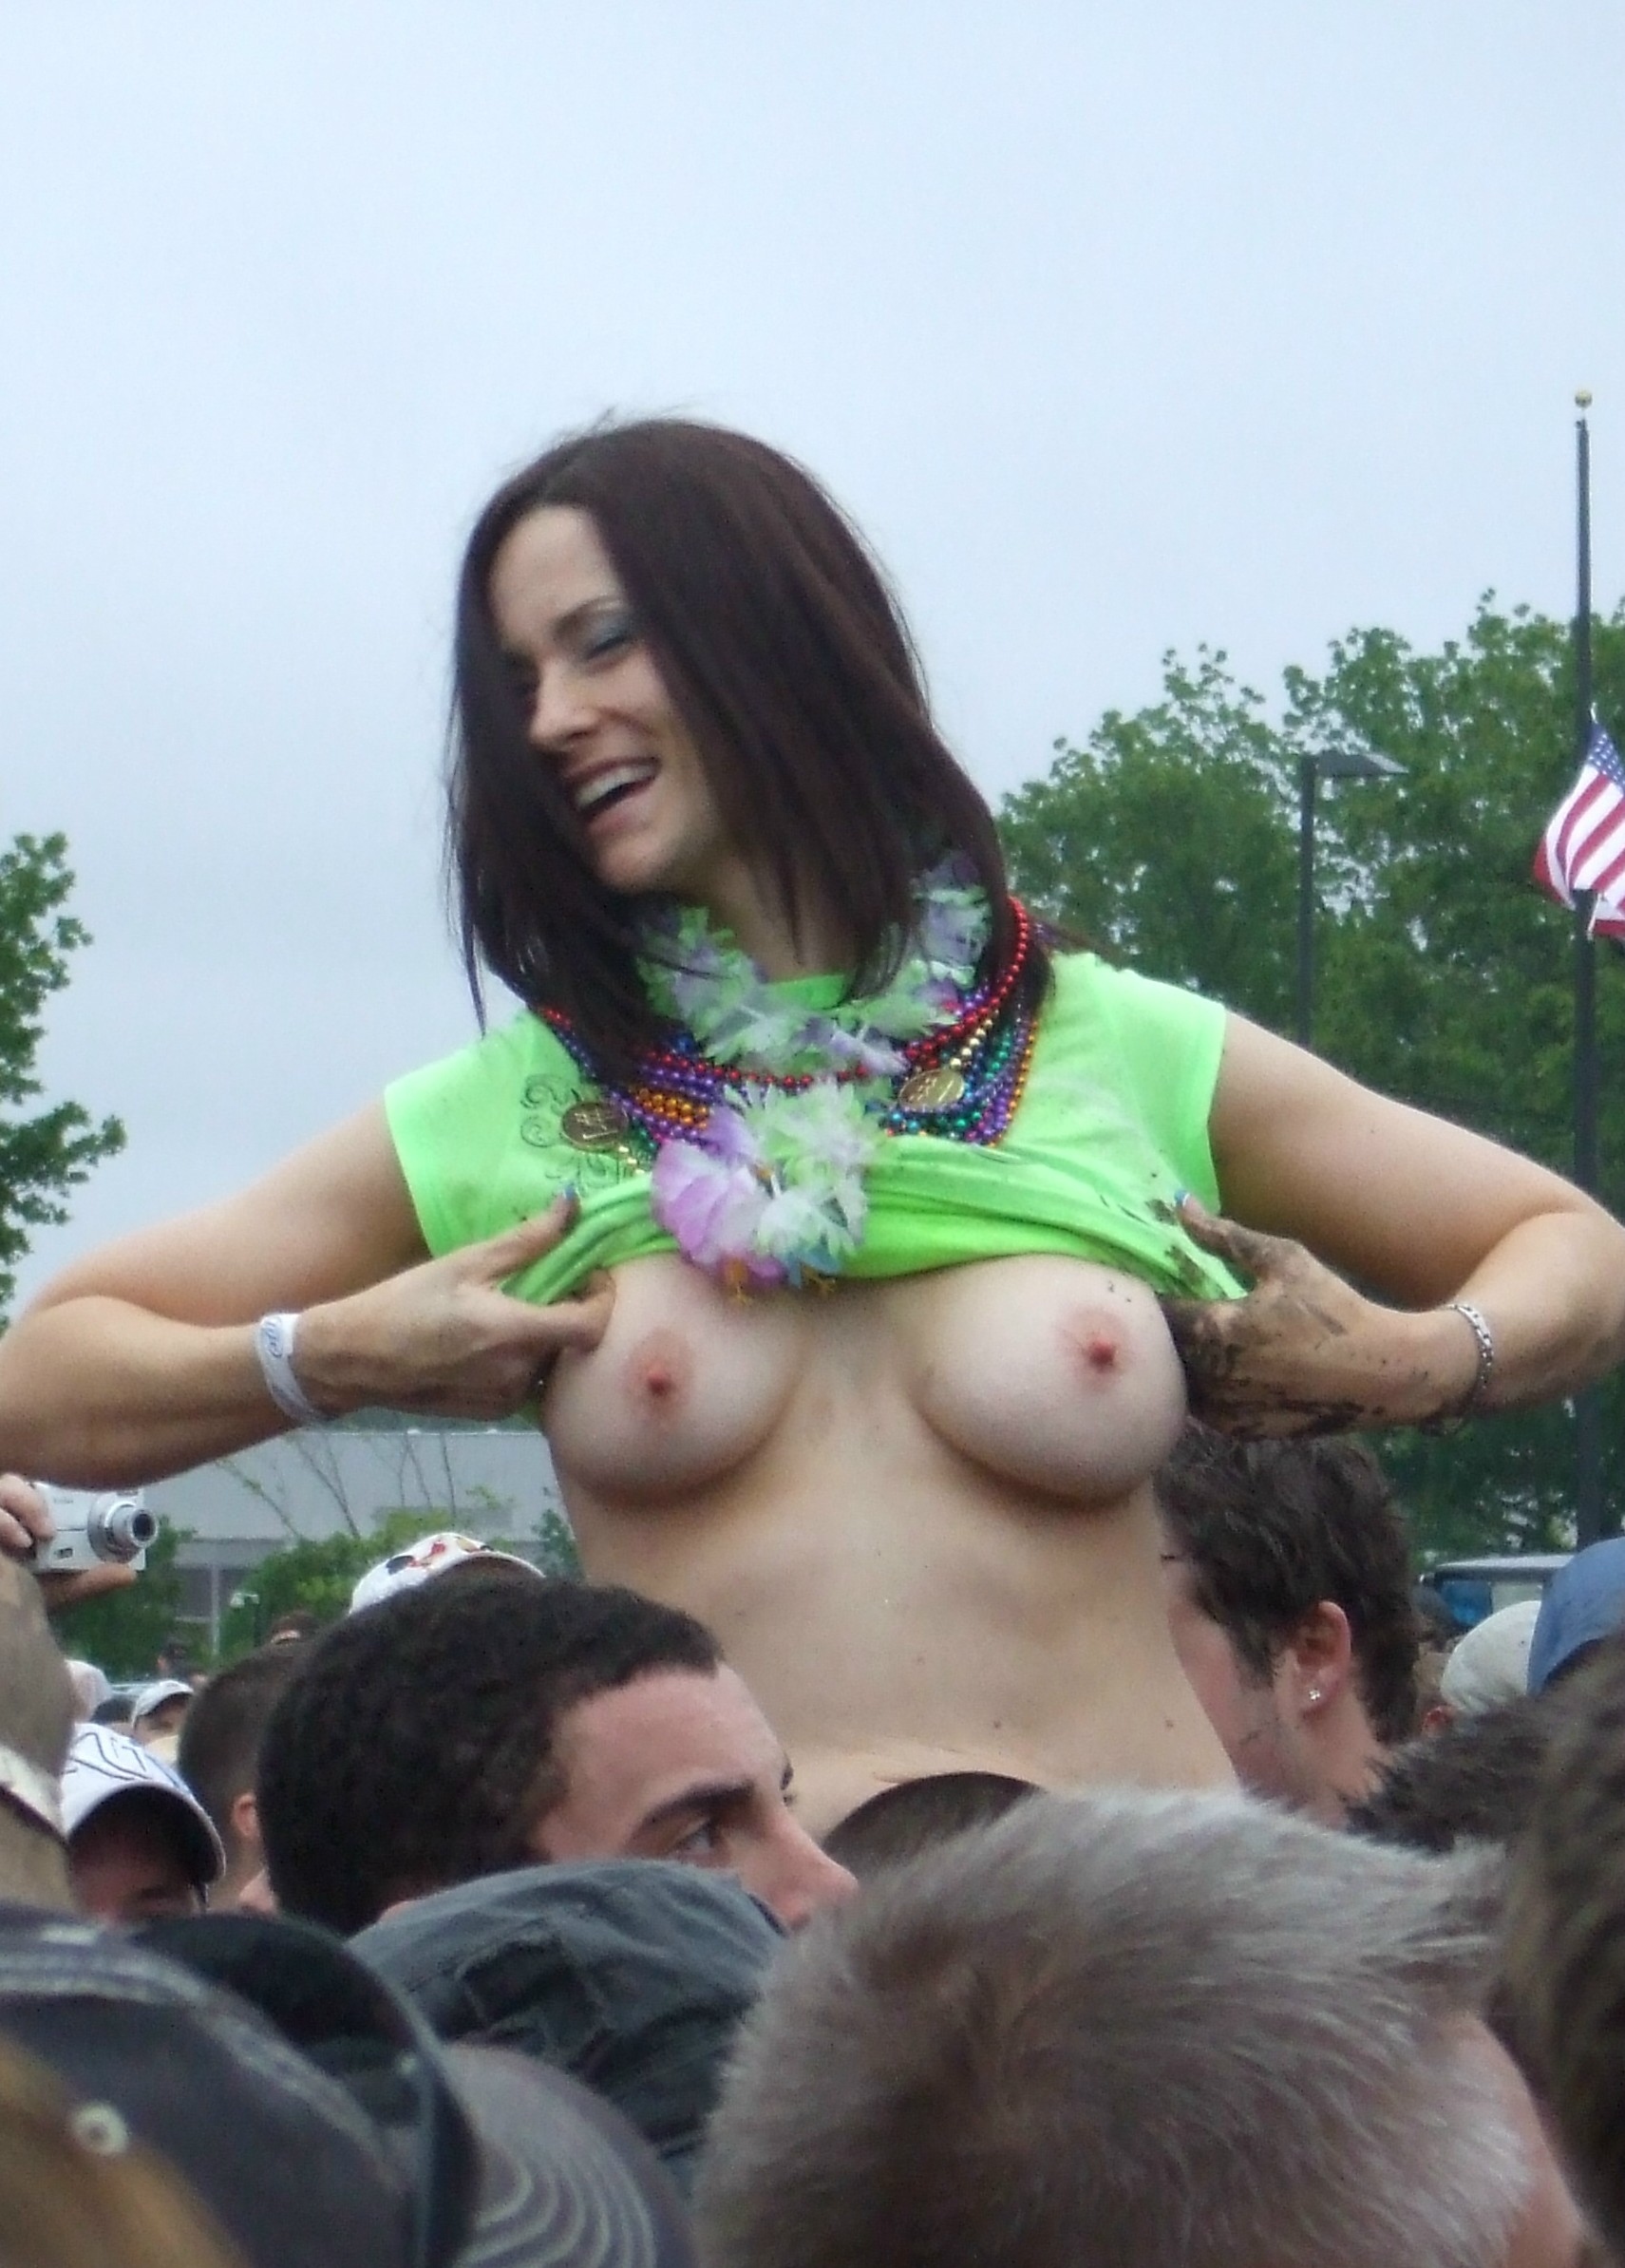 image Rockfest kc 2011 titties flashing at the concert